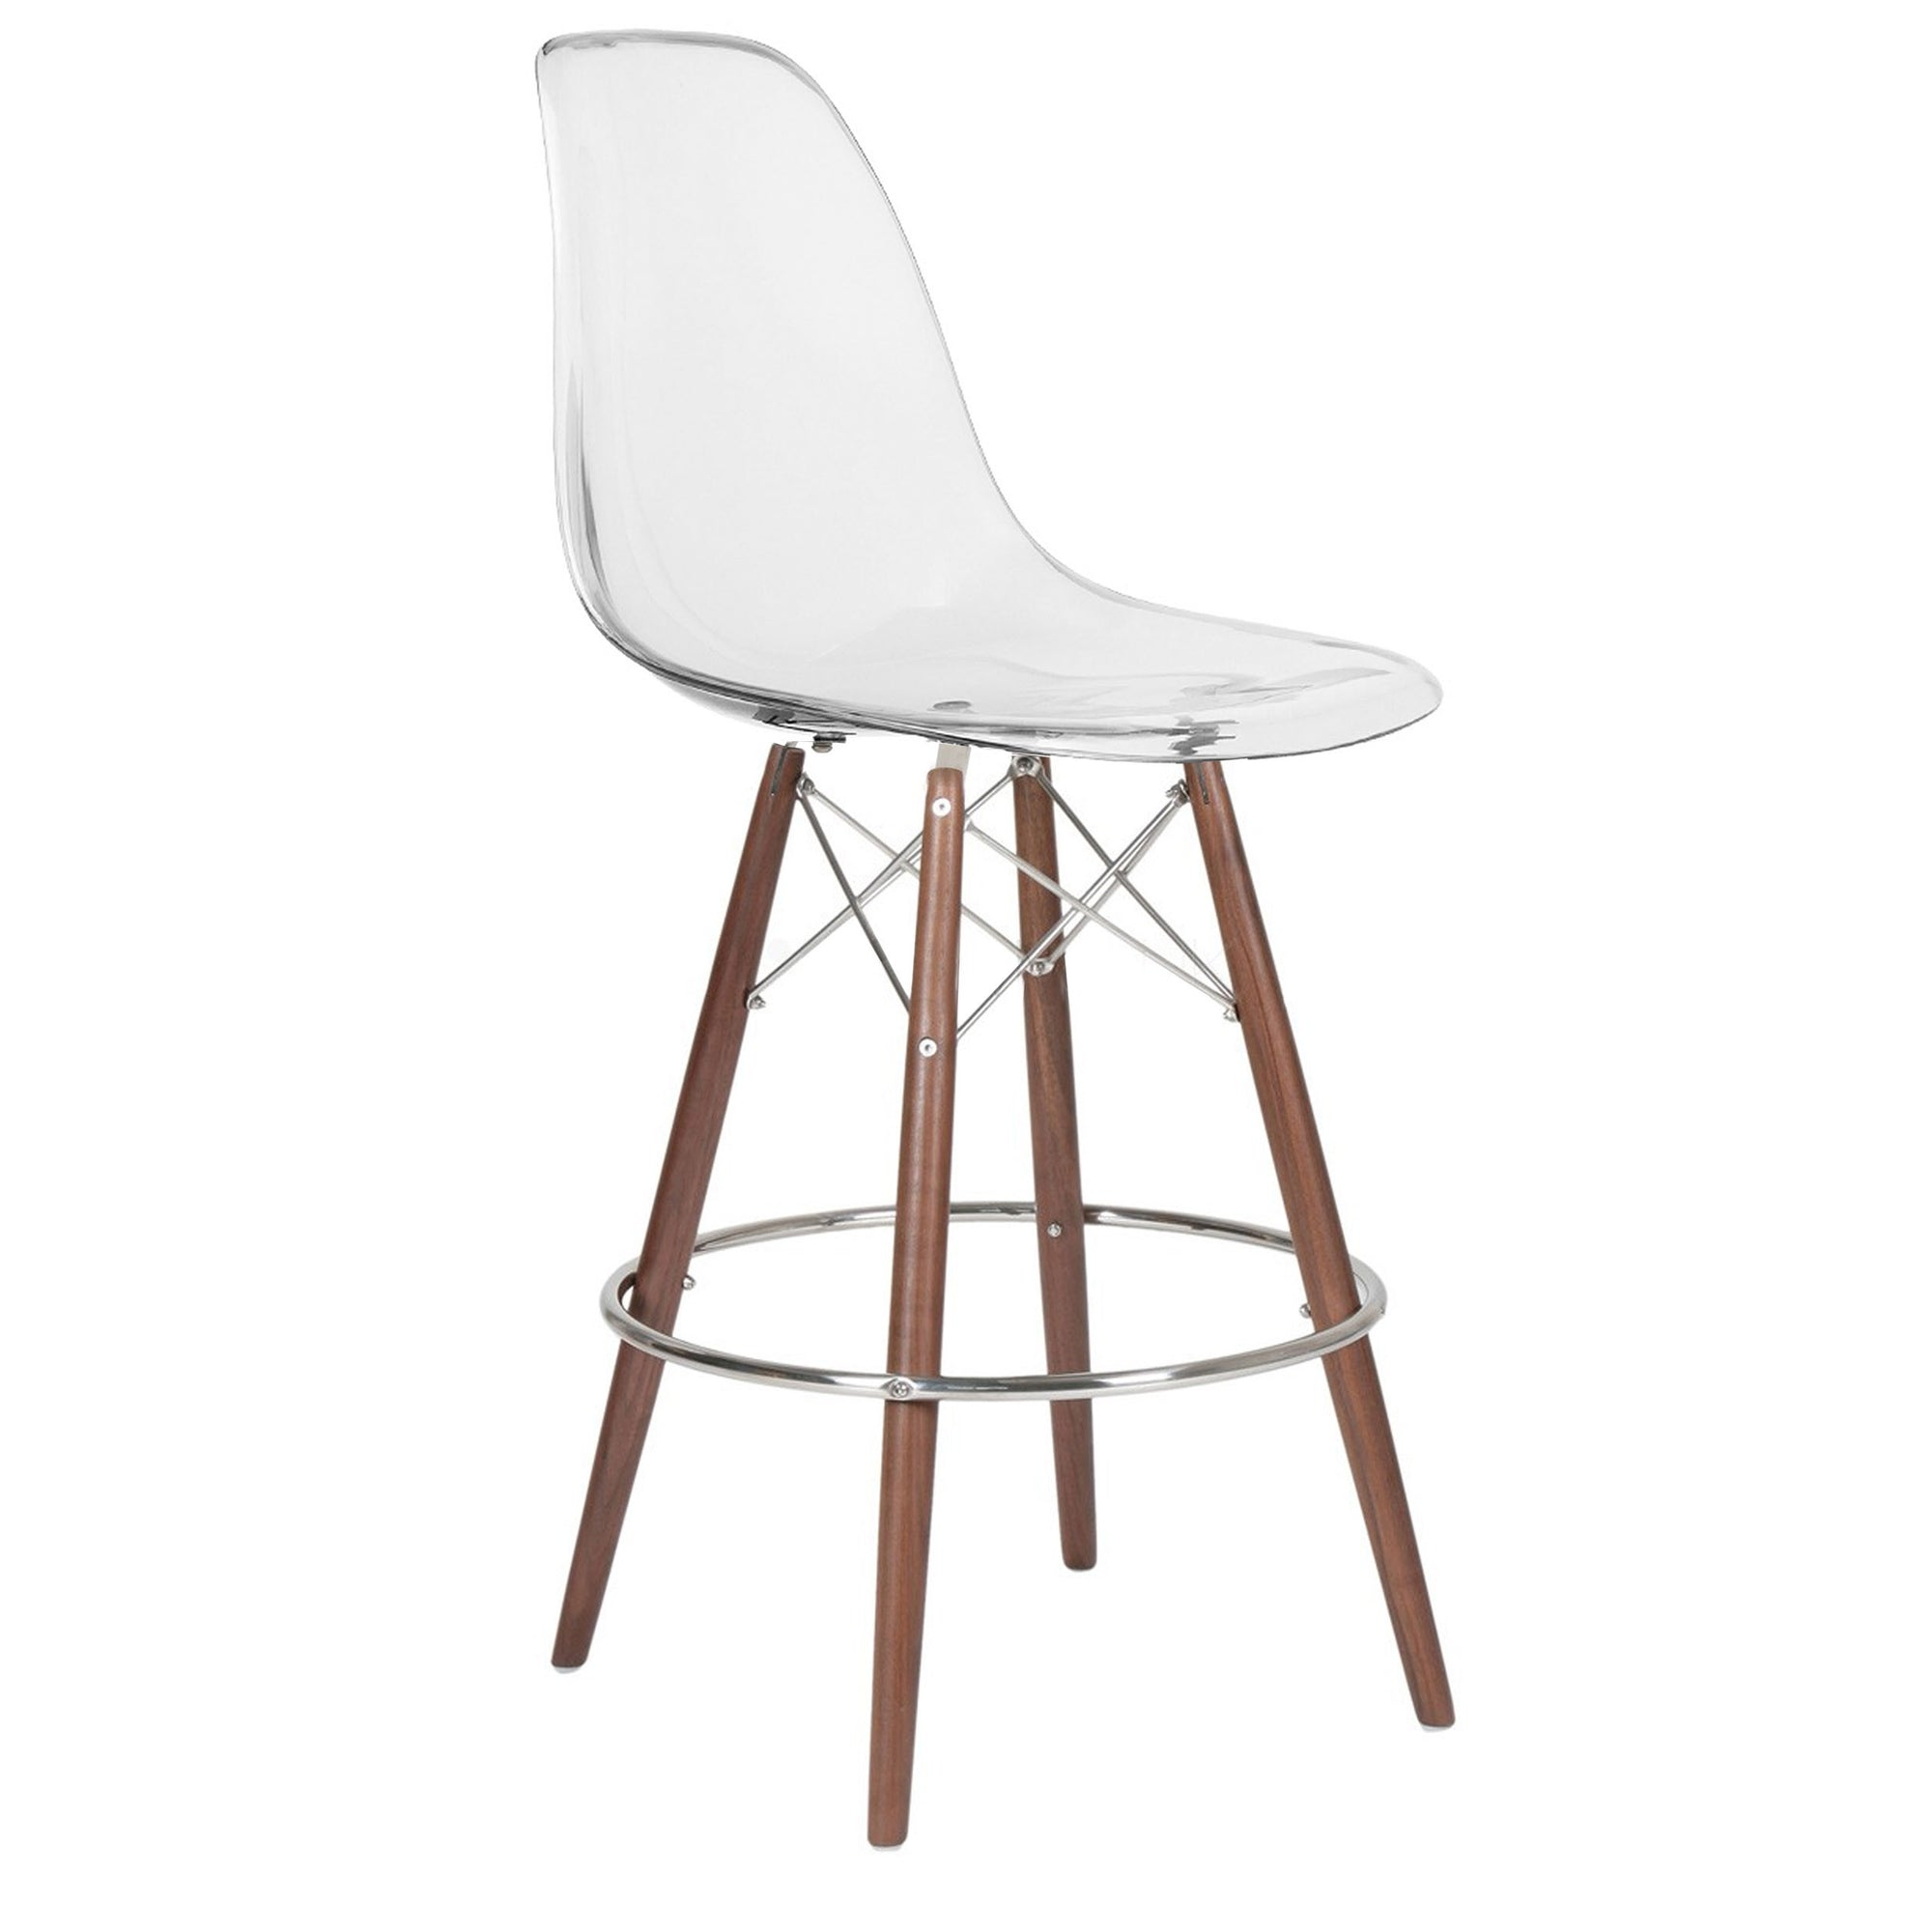 Bar Chair-Acrylic MSB00155CW -  كرسي مرتفع - اكريليك - Shop Online Furniture and Home Decor Store in Dubai, UAE at ebarza